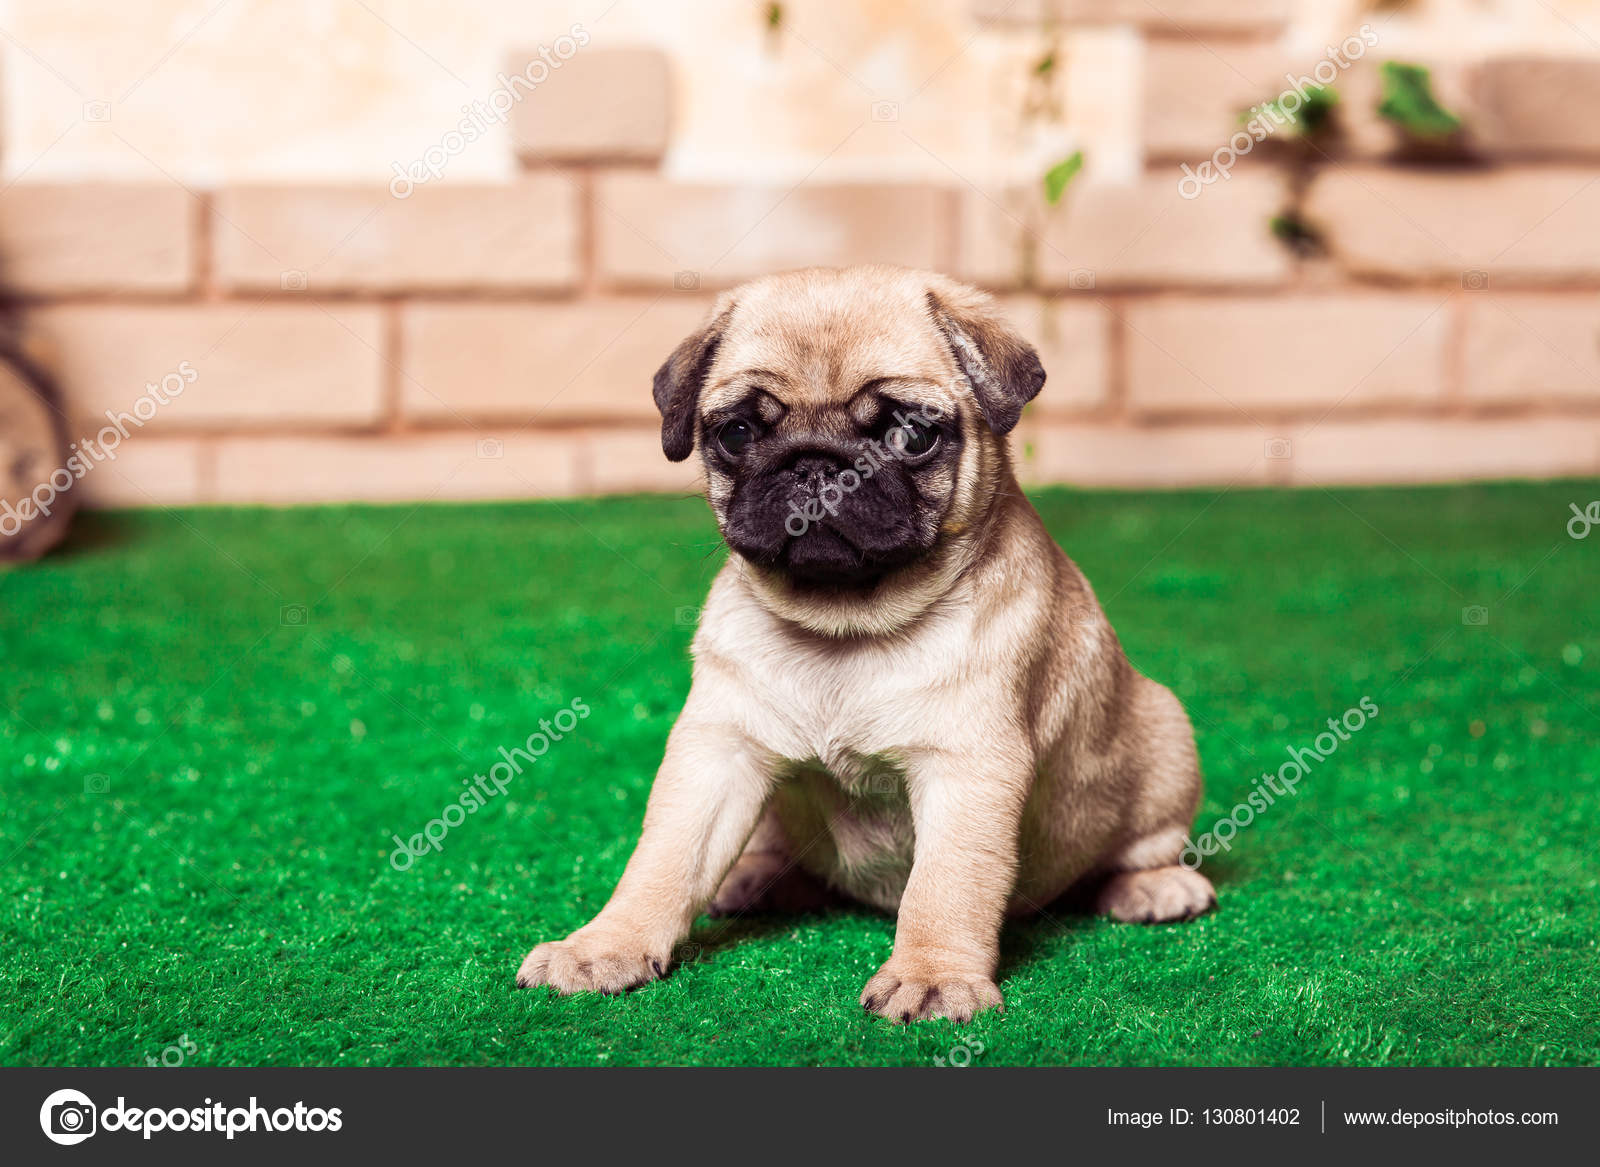 Little Beige Pug Puppies Sitting On The Green Grass Against The Stock Photo C Favorekyiv Gmail Com 130801402